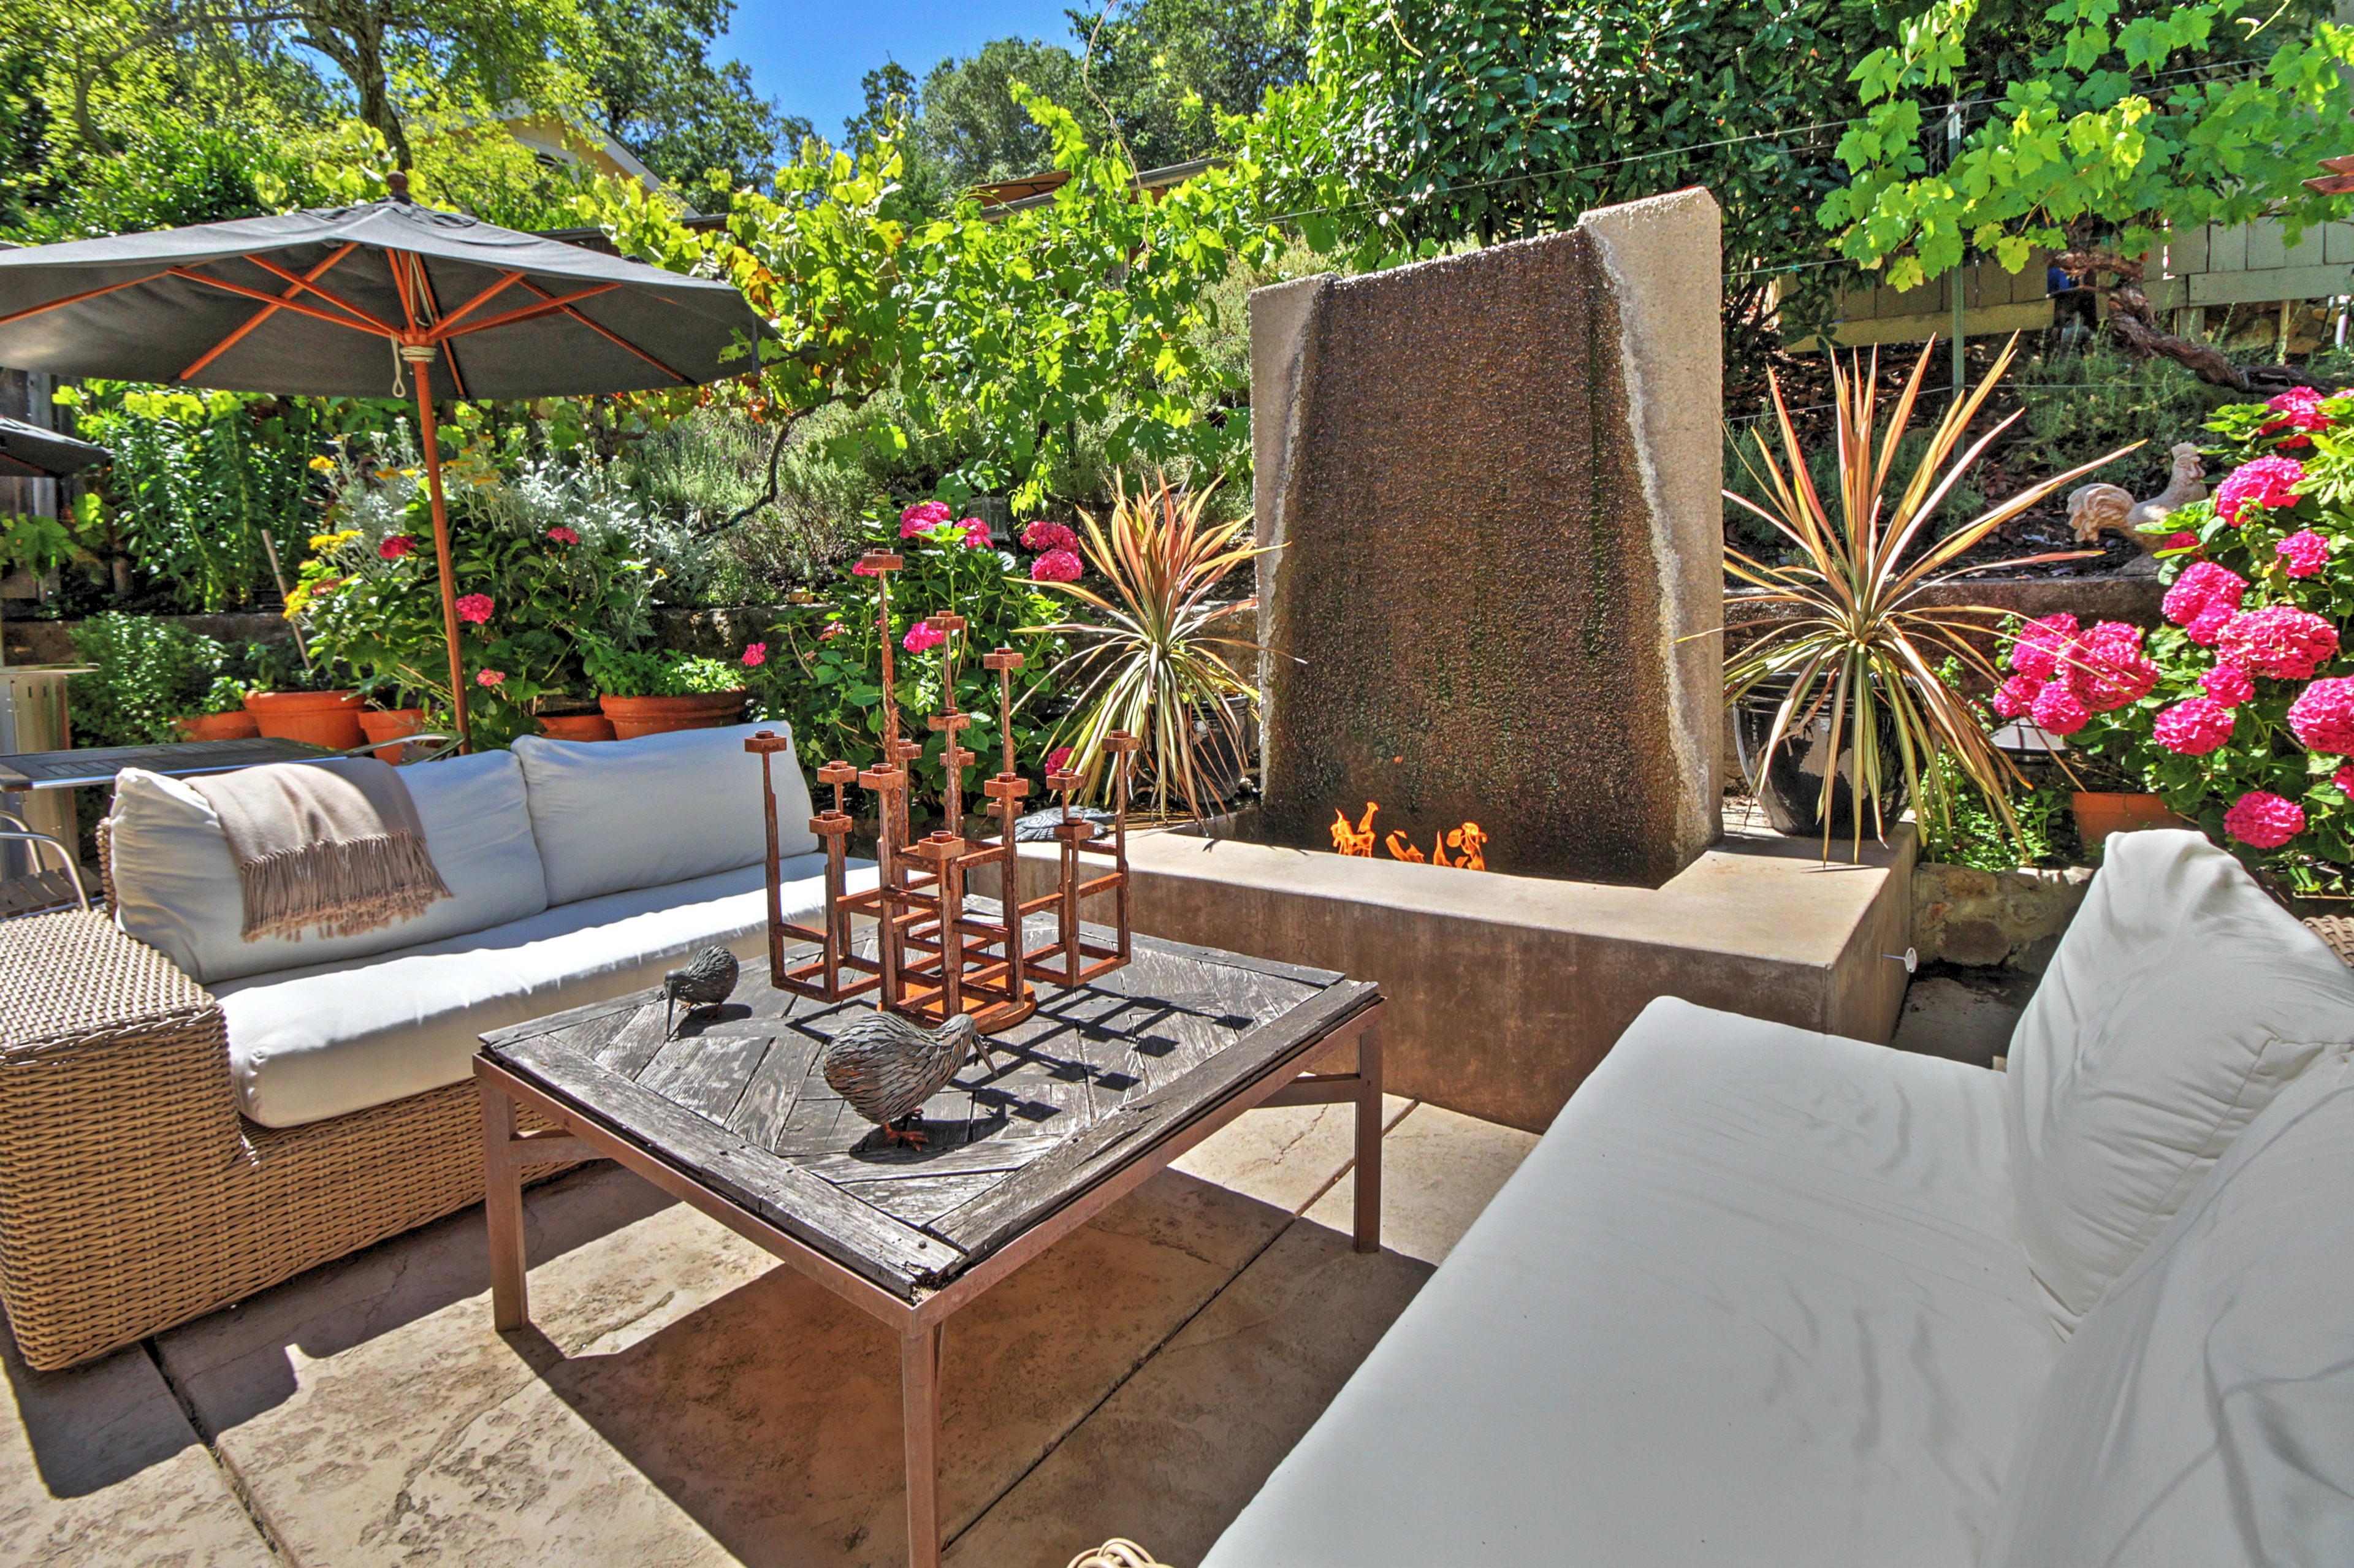 Unwind with your travel companions by the stunning outdoor fireplace.